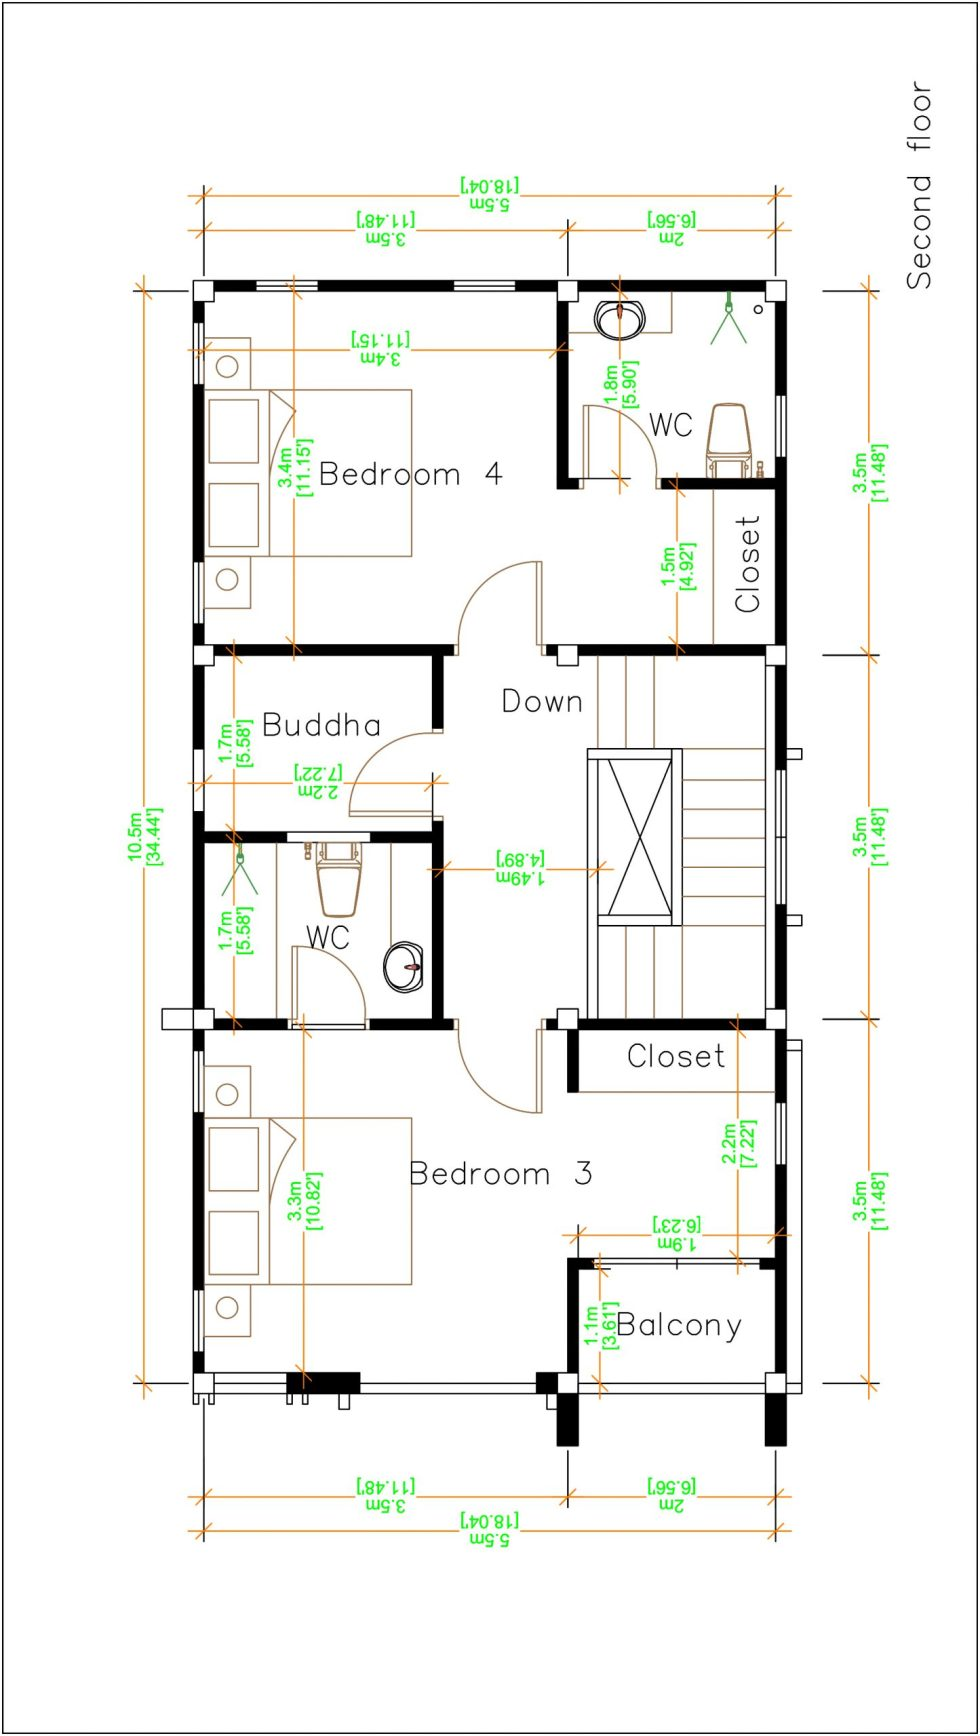 House Plans 5.5x10.5 with 4 bedrooms second floor